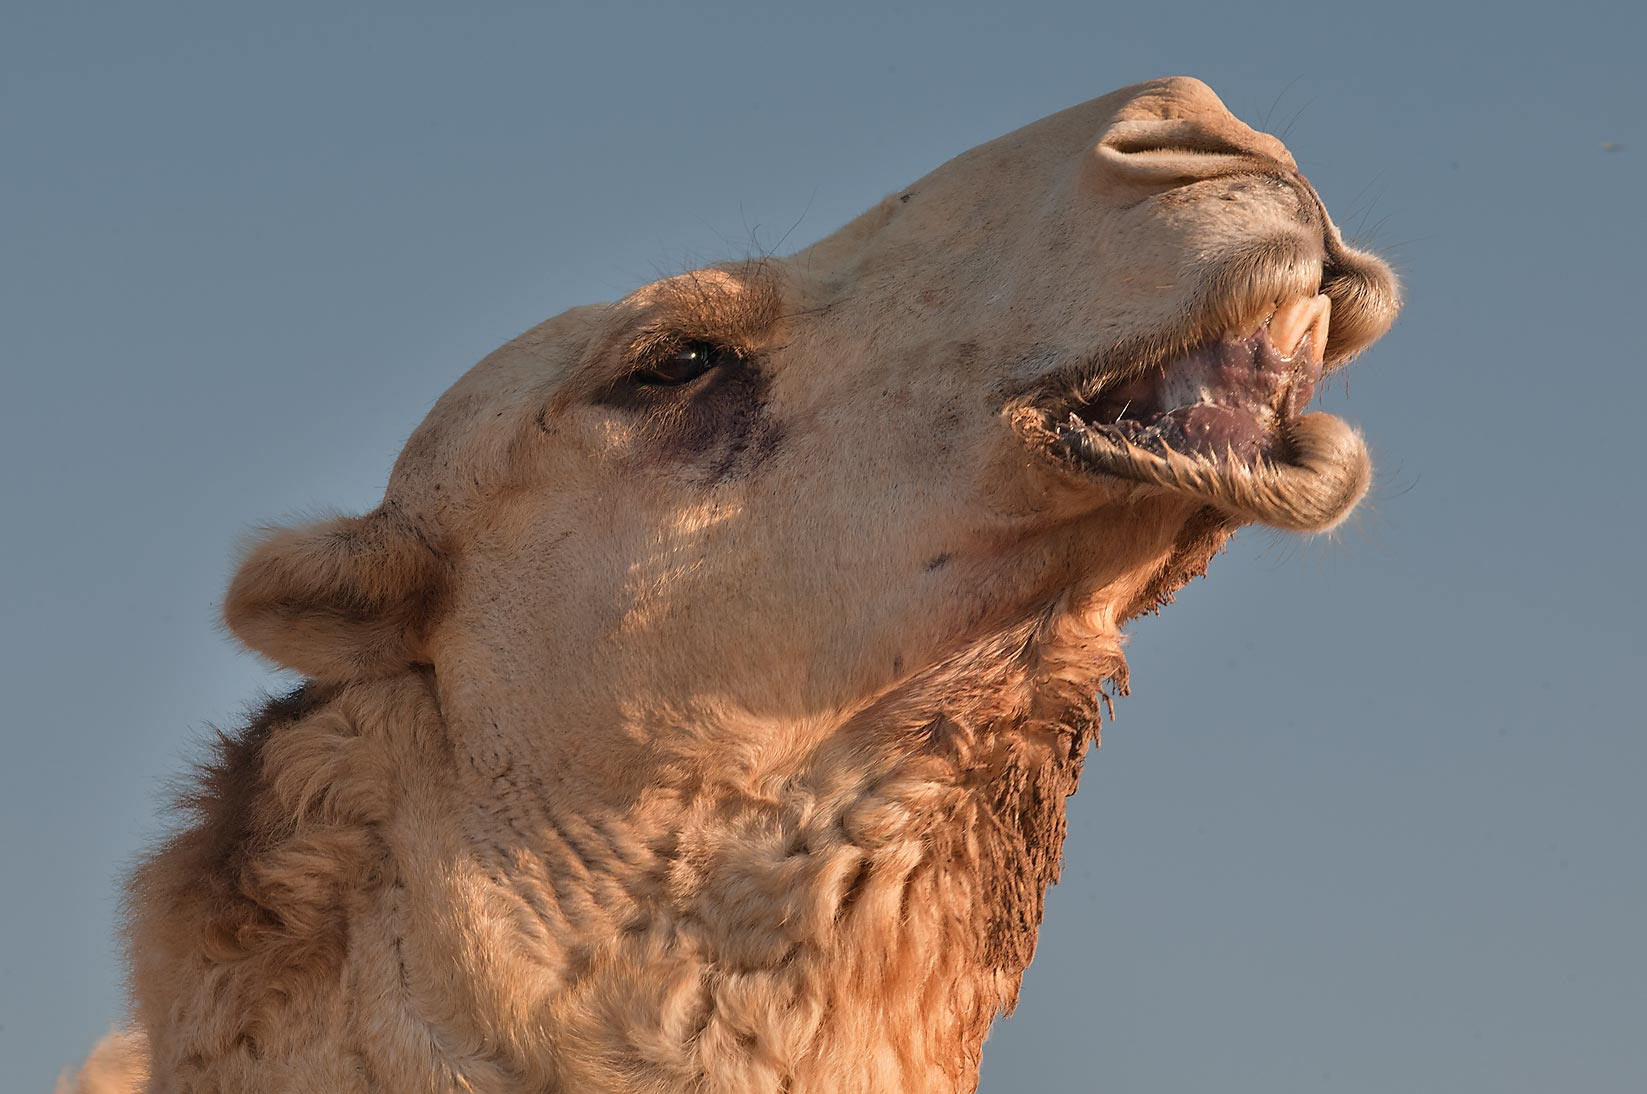 Camel with visible teeth because of drooping of...Wholesale Markets area. Doha, Qatar